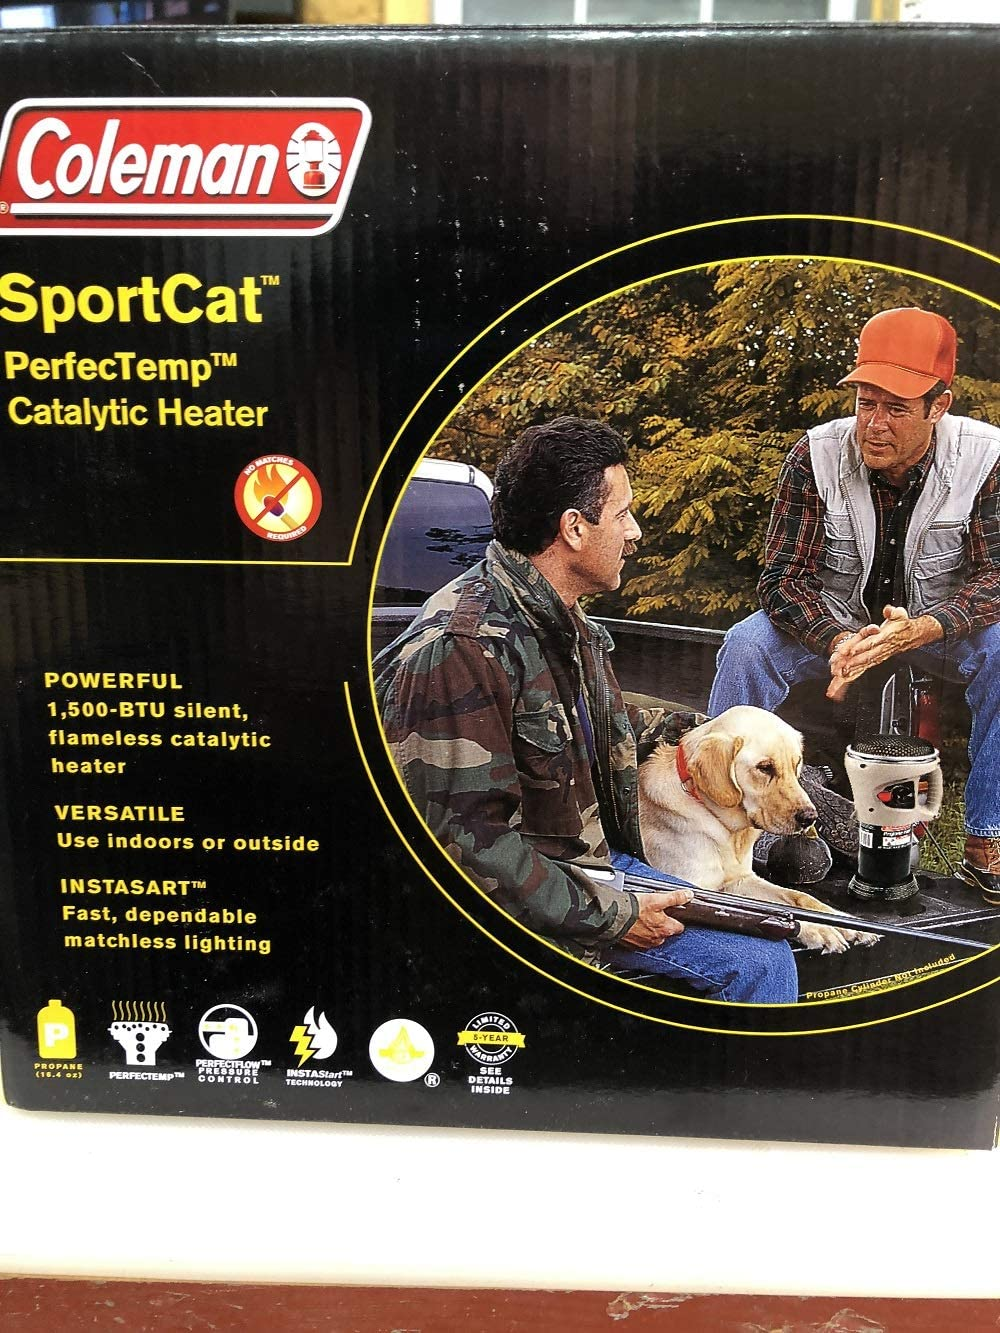 Coleman SportCat PerfecTemp Catalytic Heater